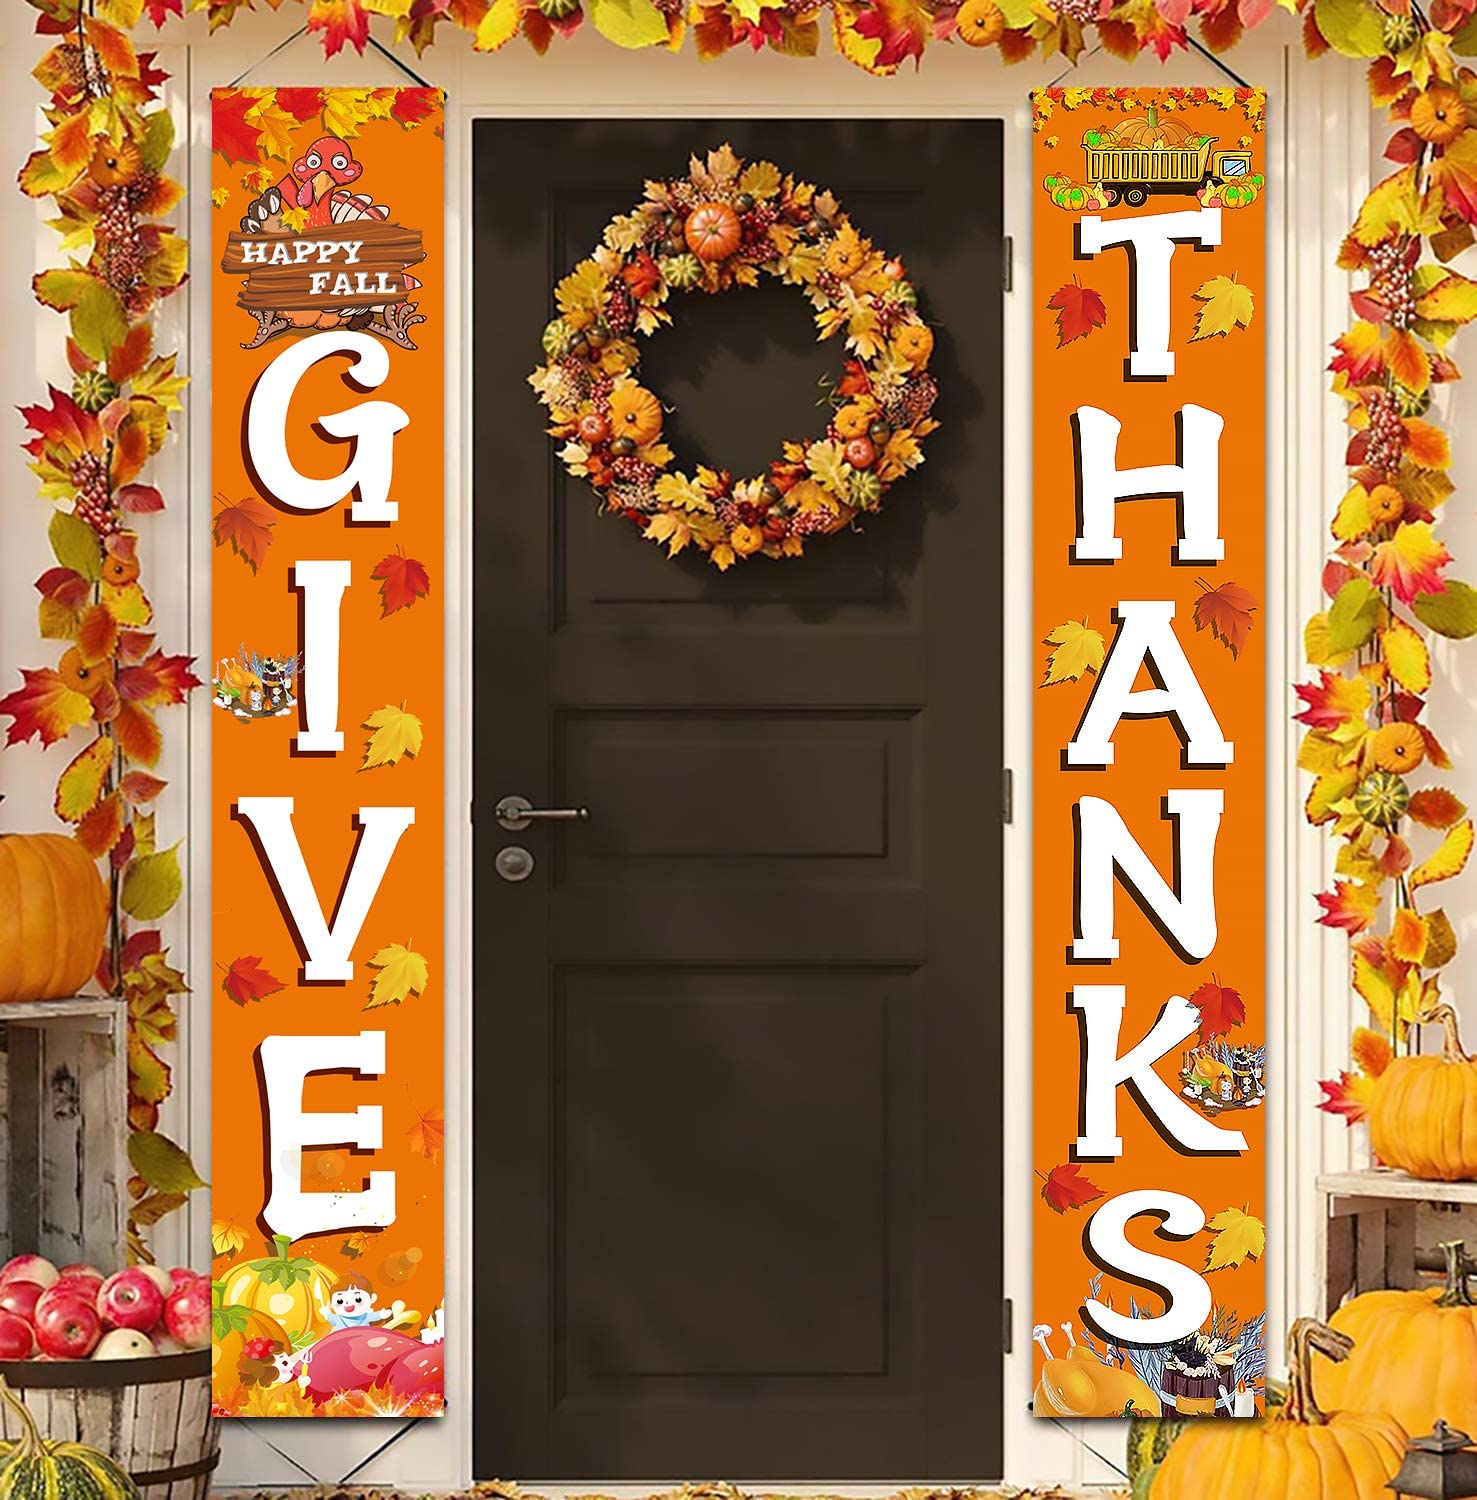 GIVE Thanks Hanging Banner Porch Sign Autumn Pumpkin Maple Leaf Backdrop Flag Fall Harvest Welcome Banner for Indoor Outdoor Wall Door Decoration Thanksgiving Party Decorations 72